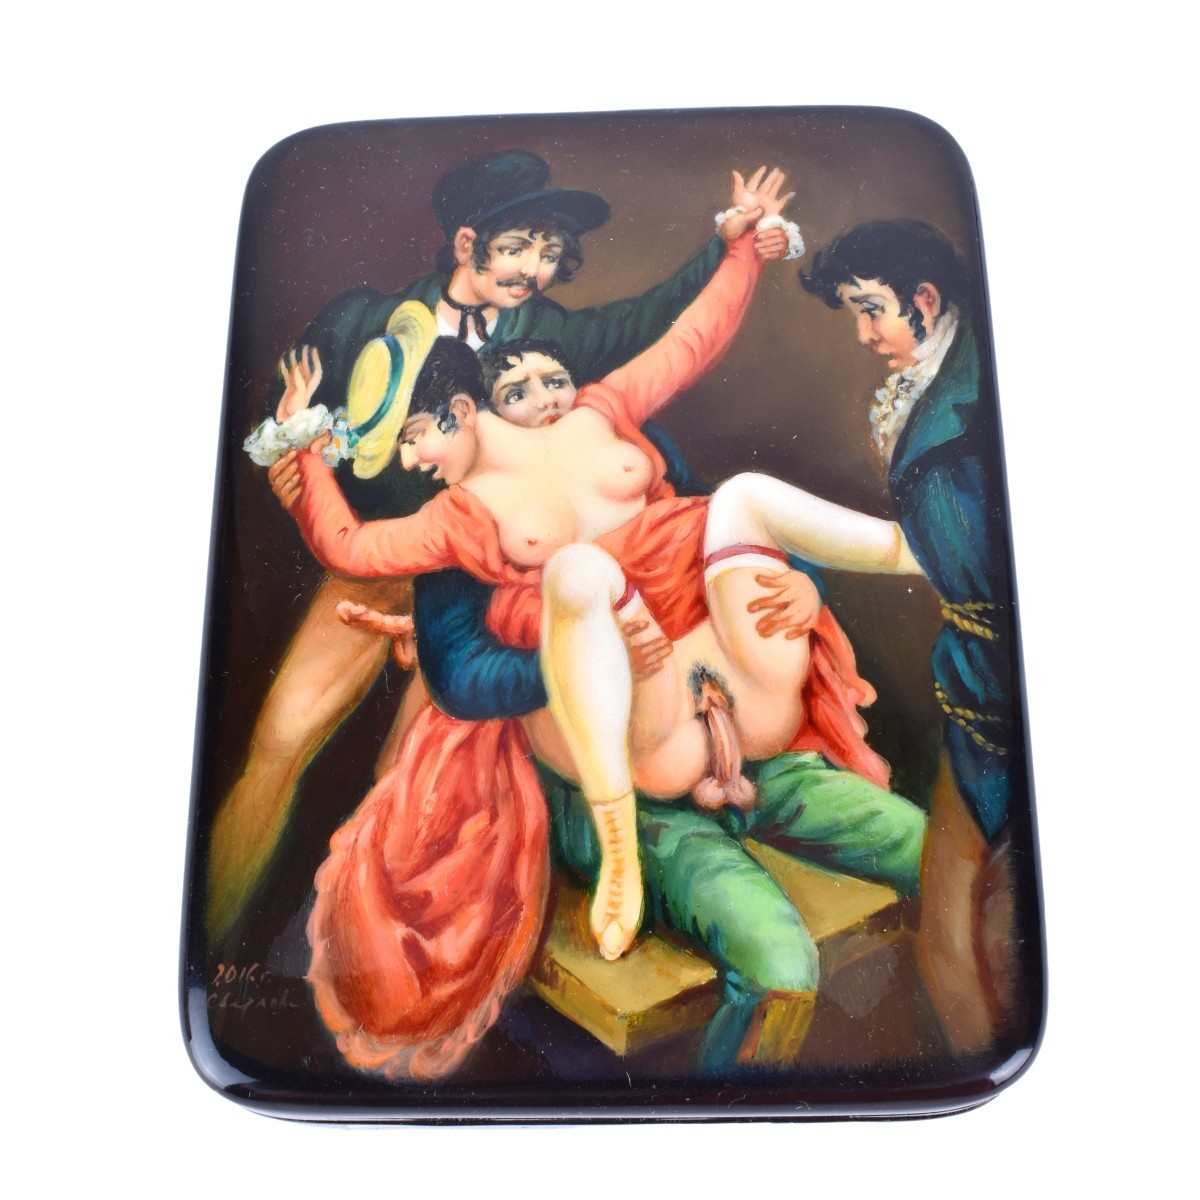 Russian Lacquer Hinged Box With Erotic Scene